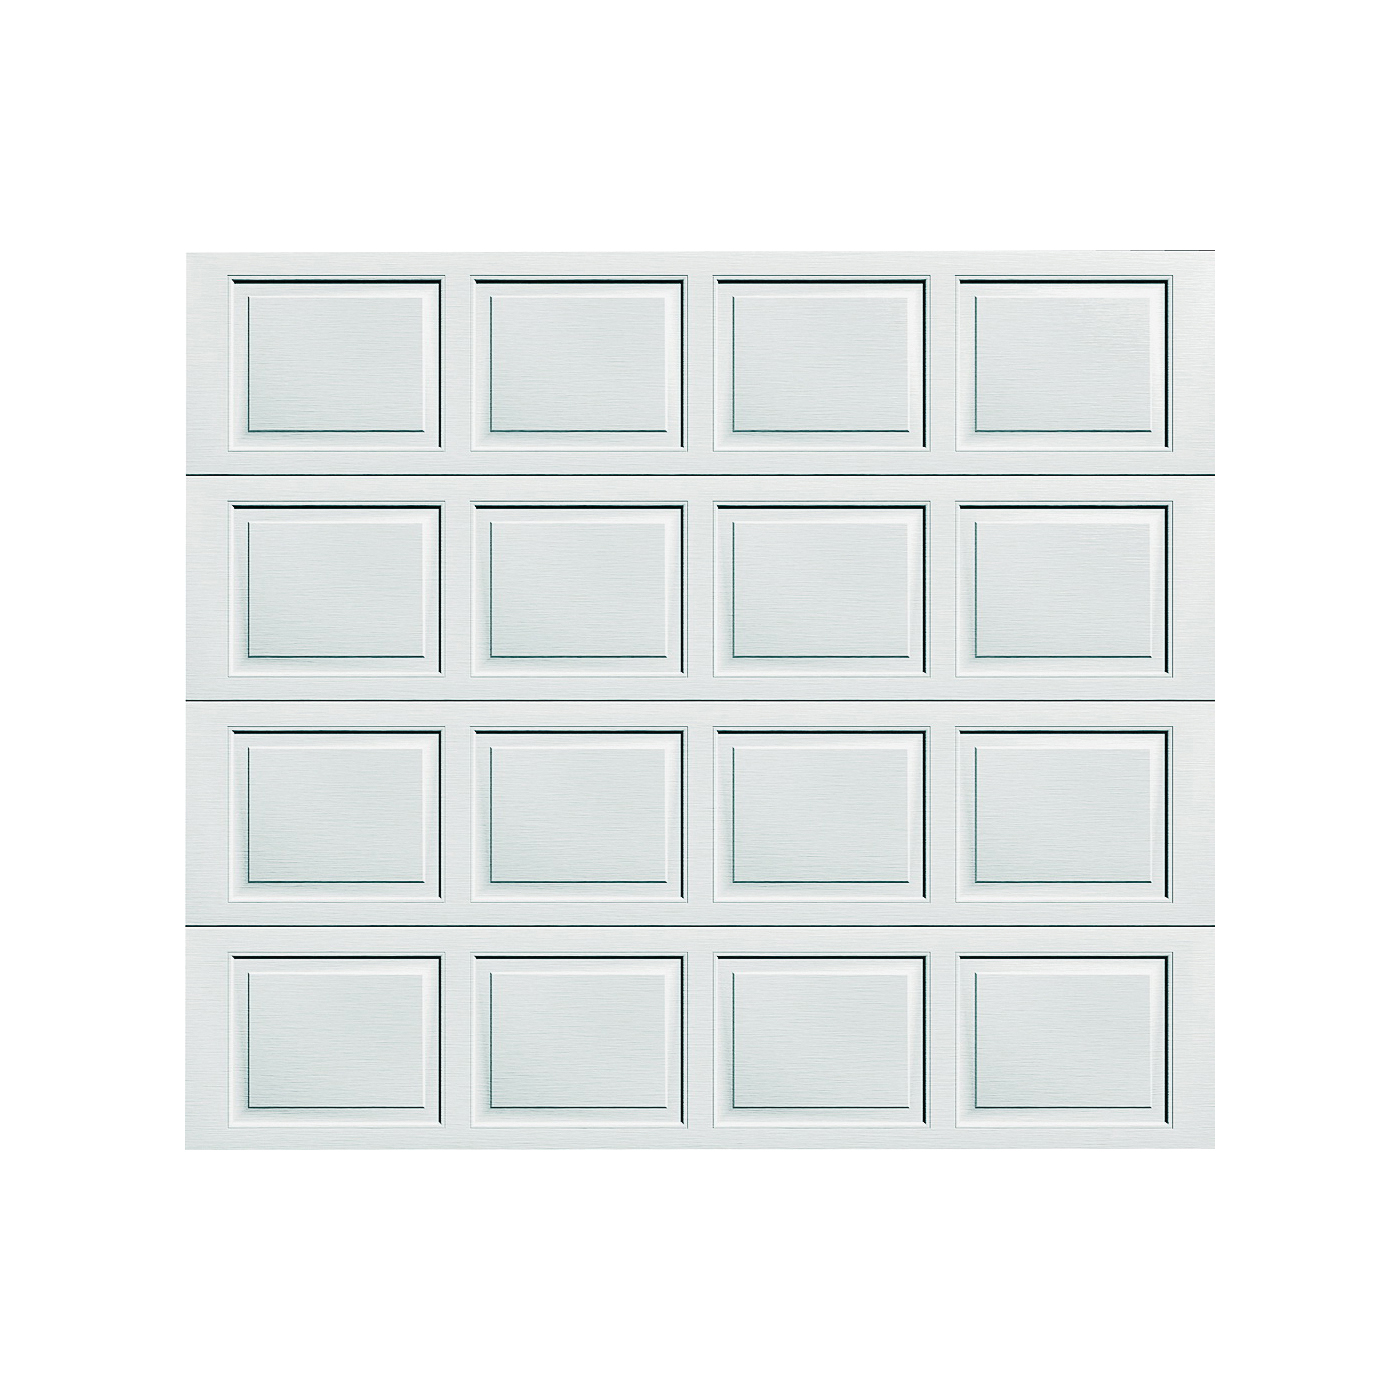 Picture of WAYNE DALTON 8000 Garage Door, 8 ft W Door, 7 ft H Door, Steel Door, White